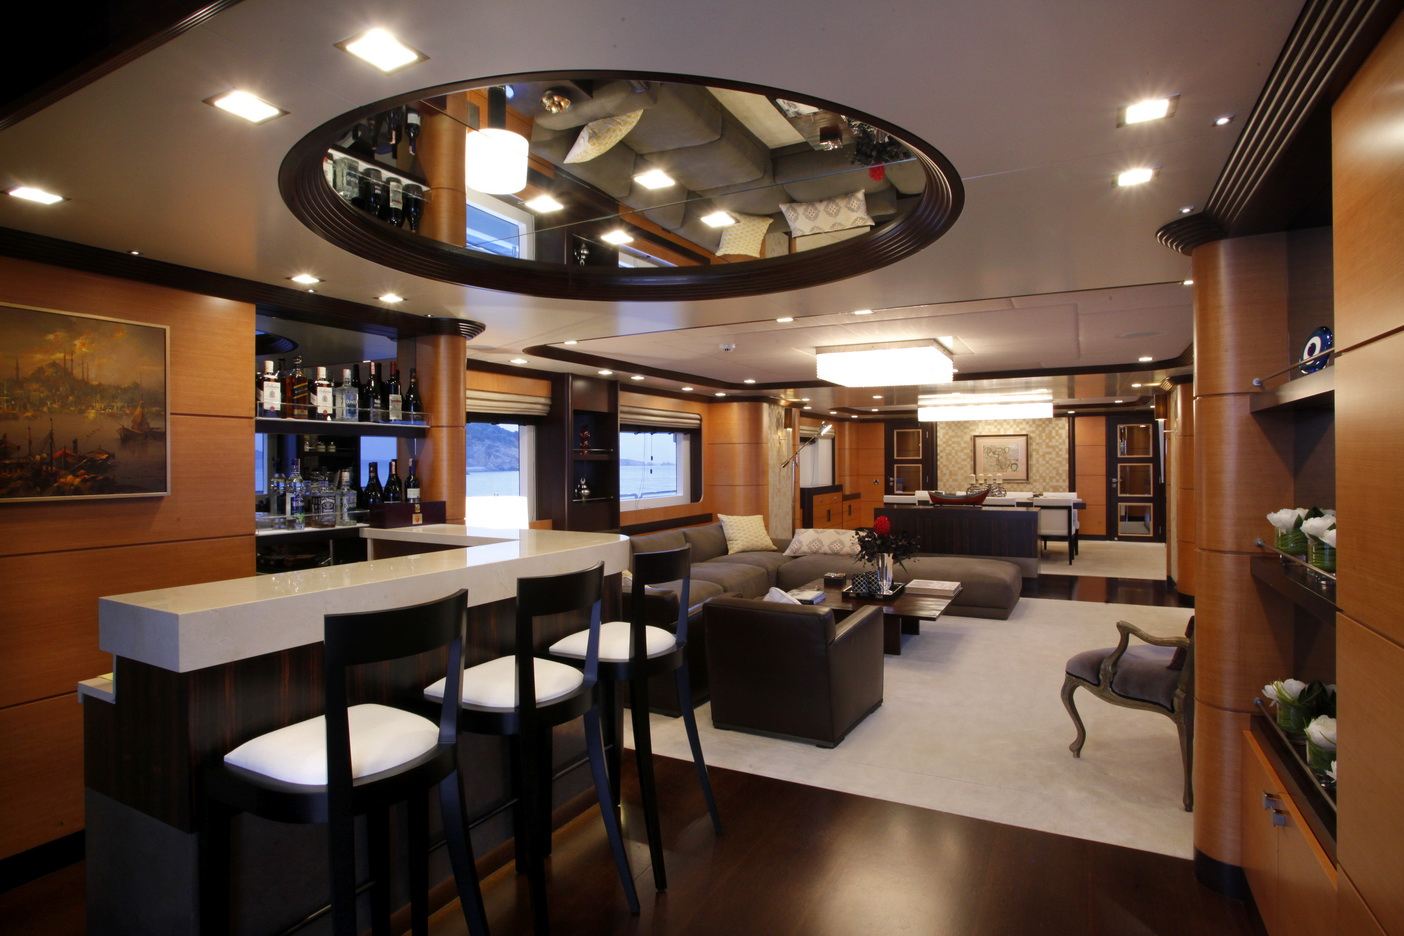 super serenity ii serenity ii salon and bar luxury yacht browser by charterworld. Black Bedroom Furniture Sets. Home Design Ideas